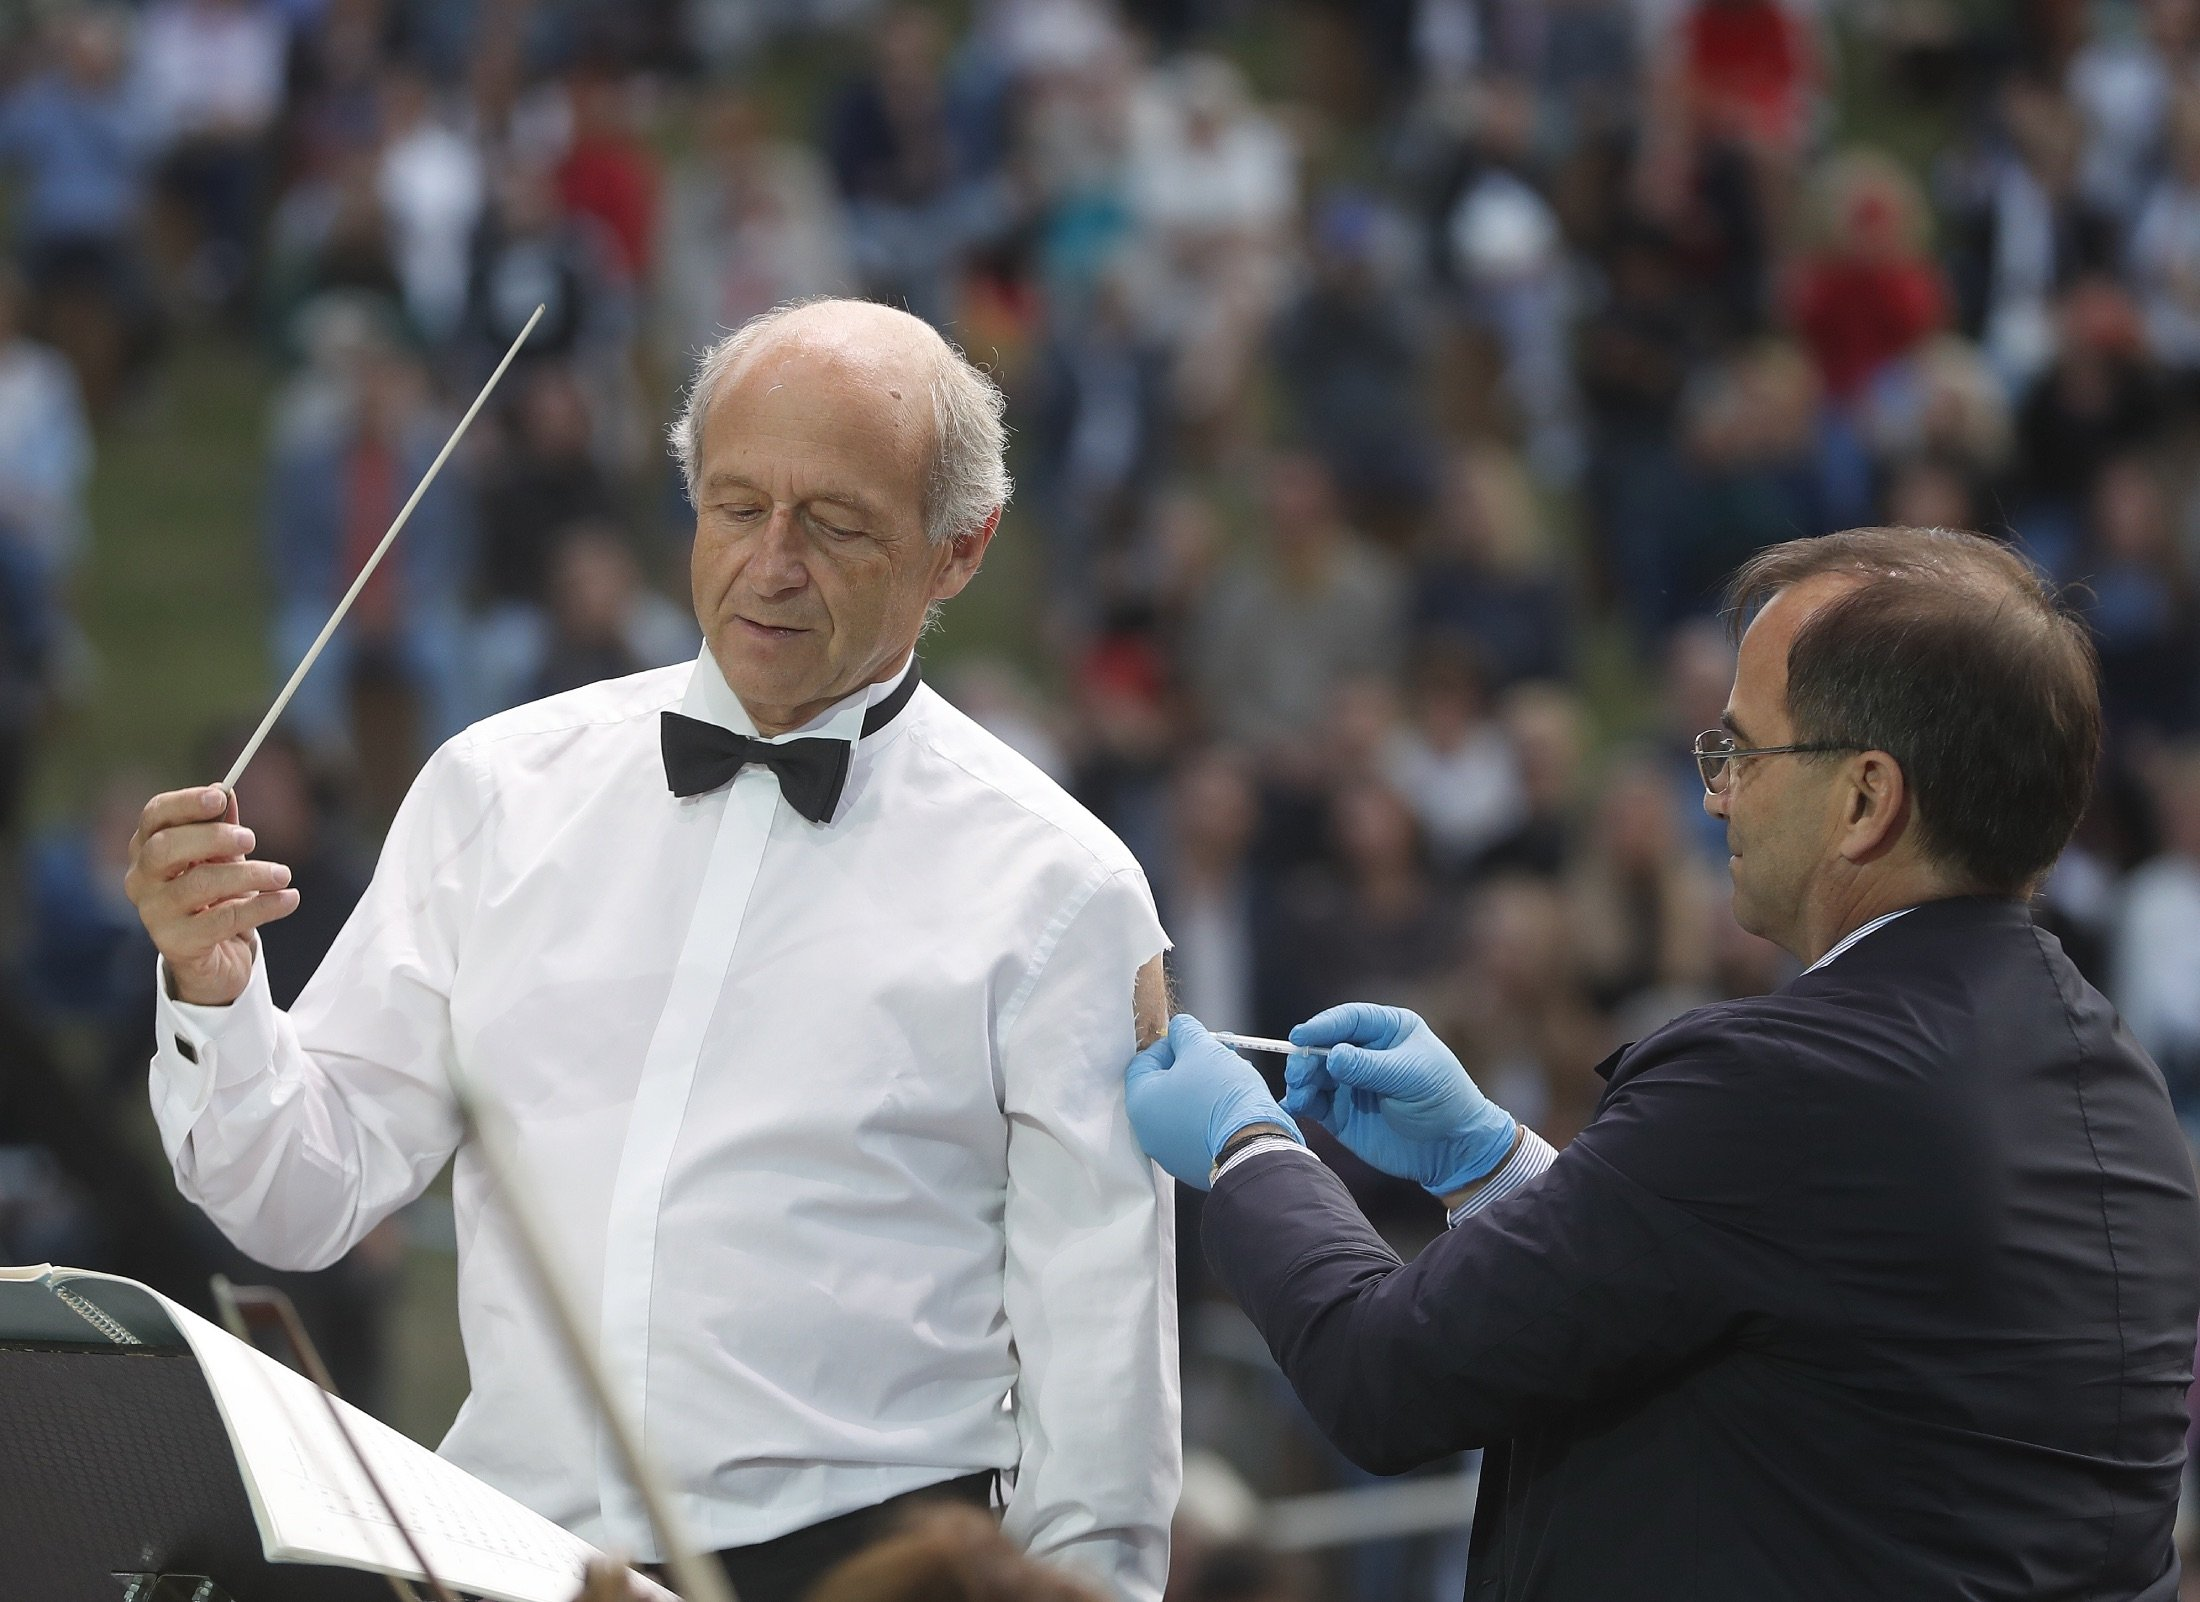 Ivan Fischer, the founder of the Budapest Festival Orchestra, receives his third dose of the COVID-19 vaccine as he conducts the orchestra, during a free concert in Budapest, Hungary, Aug. 25, 2021. (AP Photo)